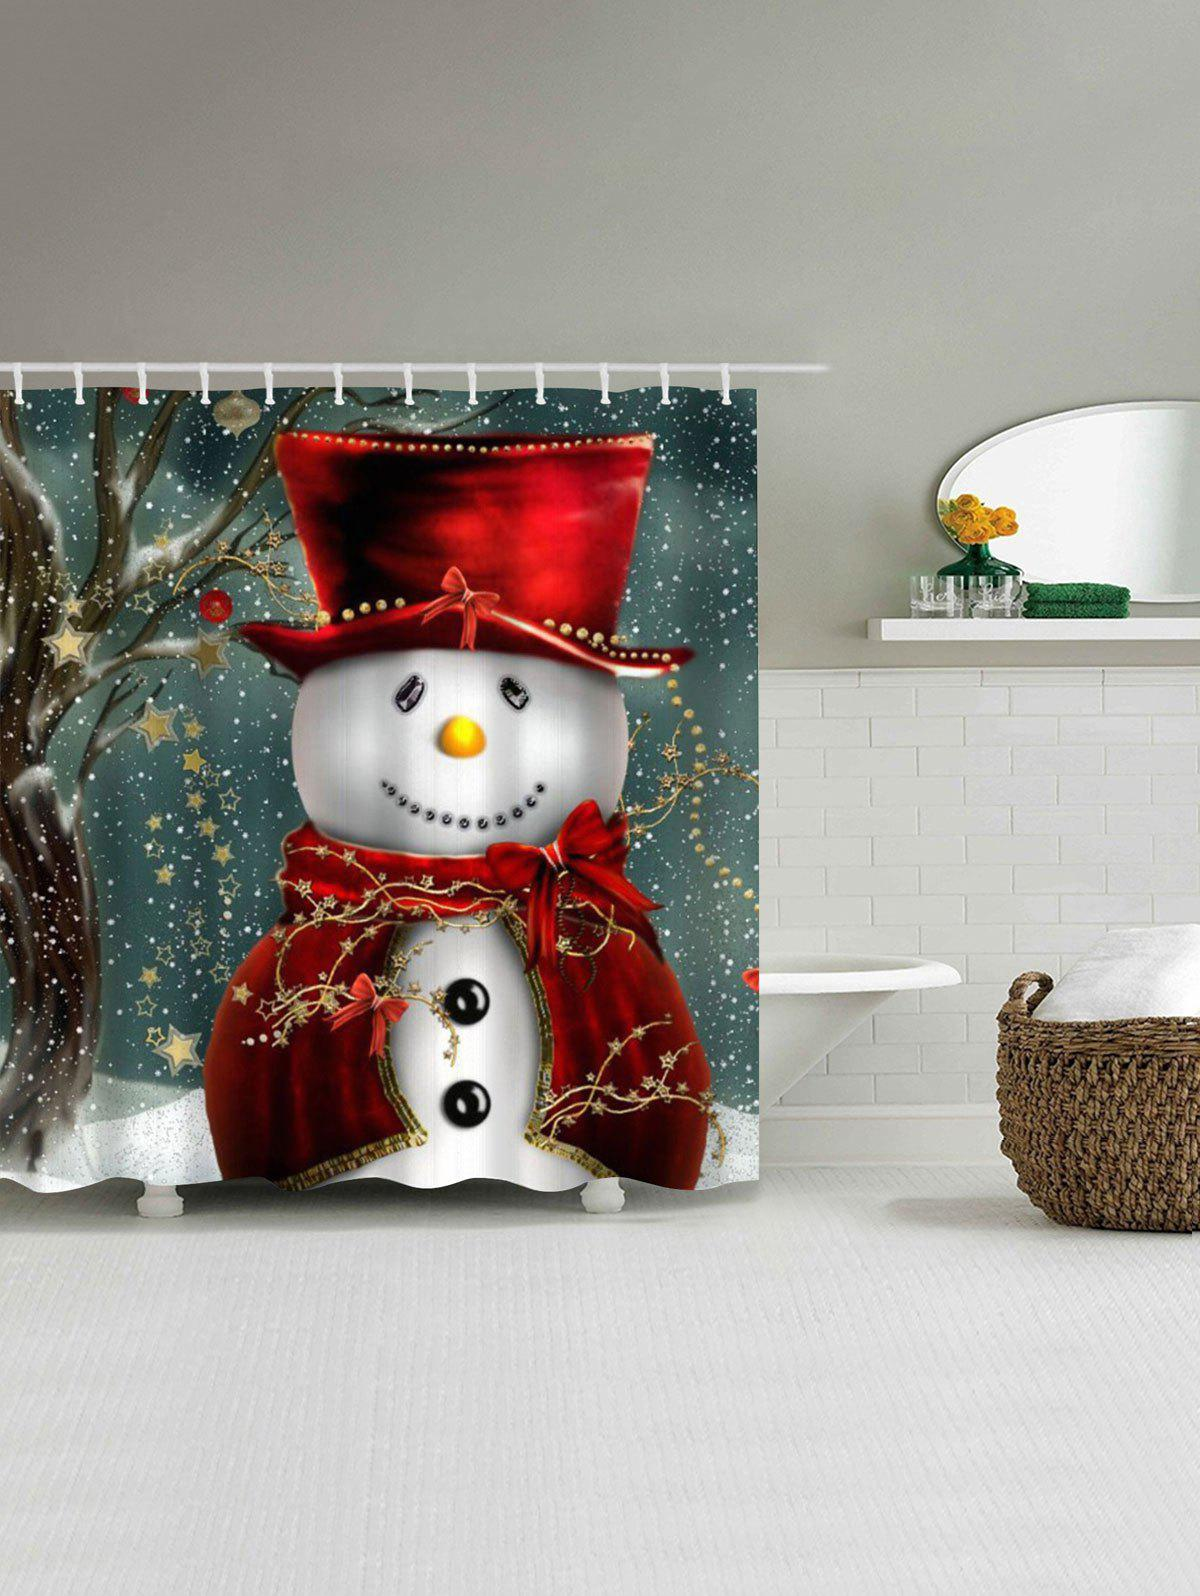 Christmas Snowman Mouldproof Waterproof Bathroom Shower CurtainHOME<br><br>Size: XL; Color: COLORMIX; Type: Shower Curtains; Material: Polyester; Weight: 0.5400kg; Package Contents: 1 x Shower Curtain;